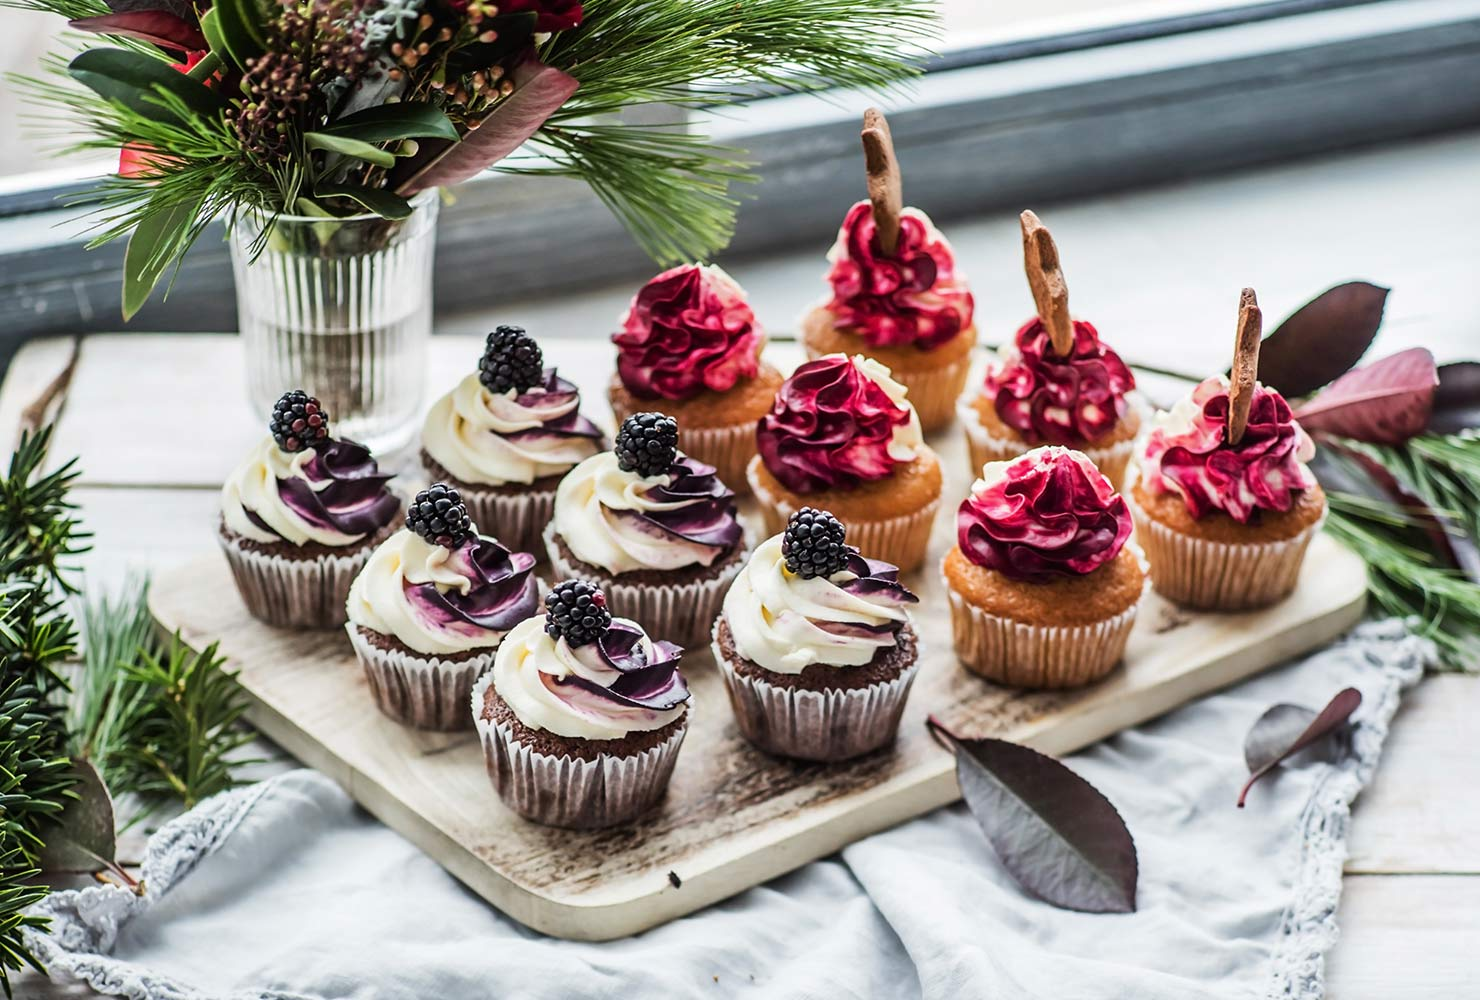 Colorful cupcakes on table.